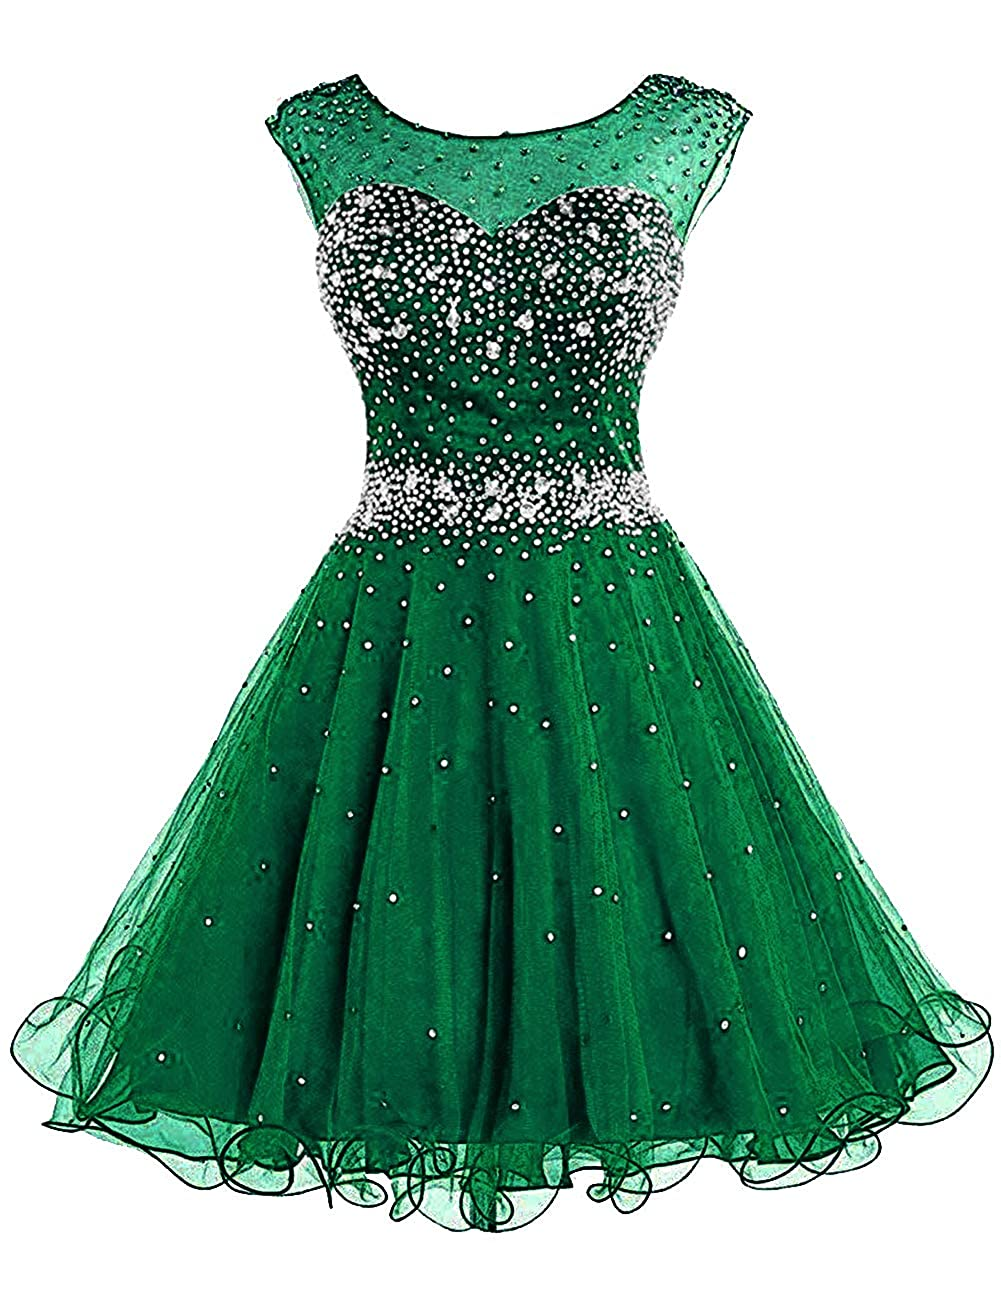 Dark Green H.S.D Homecoming Dresses Prom Party Dresses Short Cocktail Dress Beads Graduation Gown